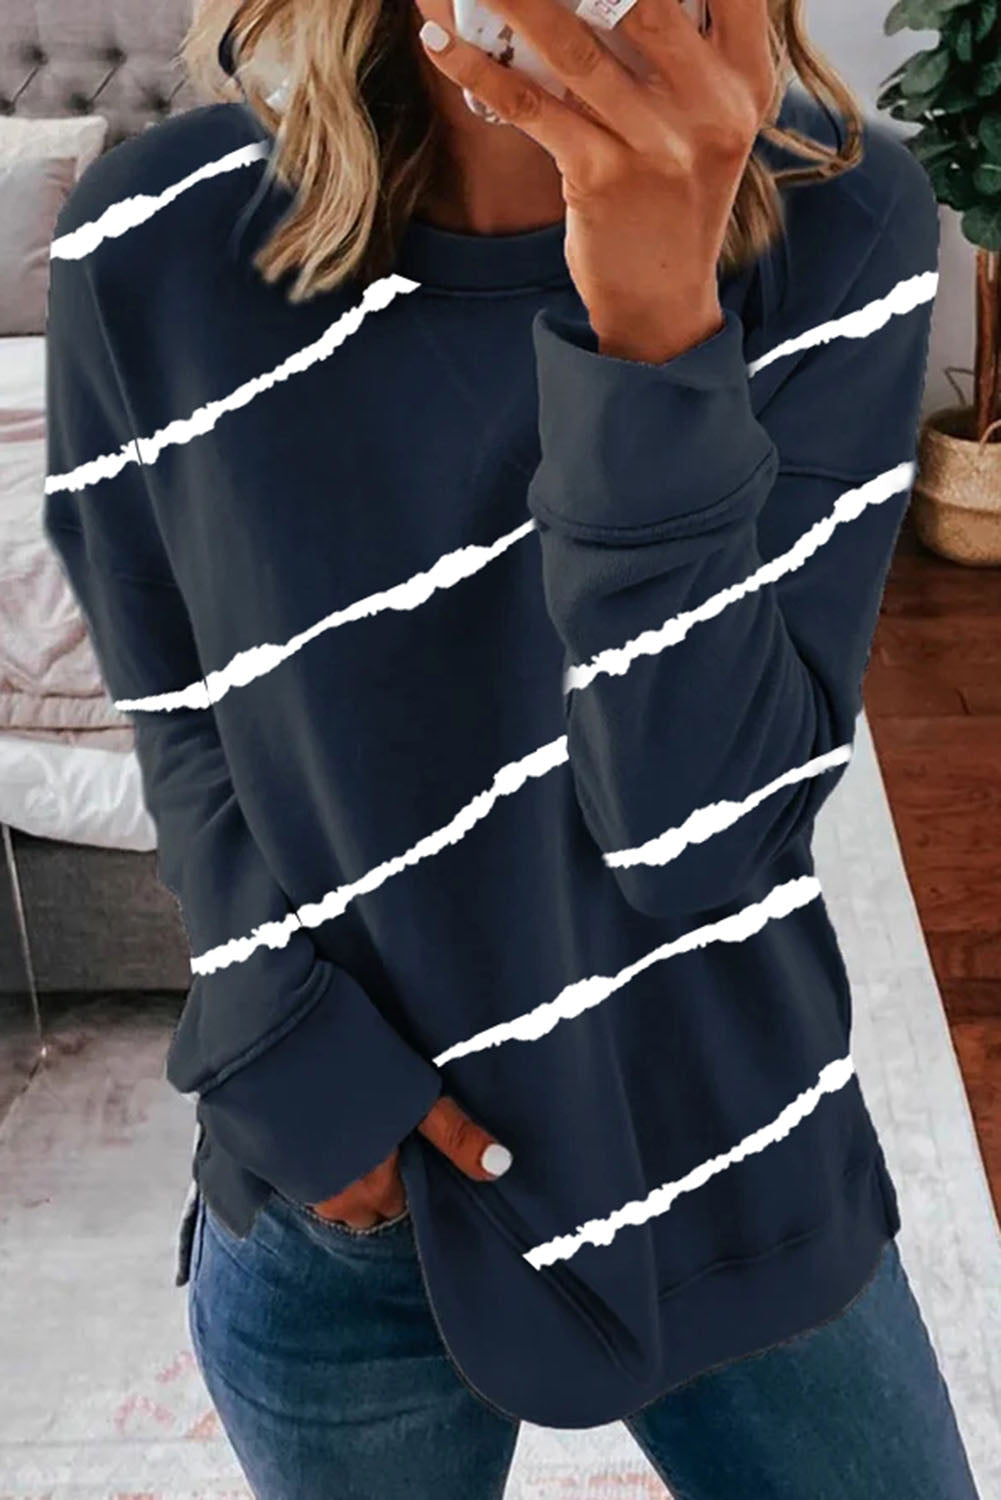 Striped Tie-dye Print Navy Sweatshirt with Slits